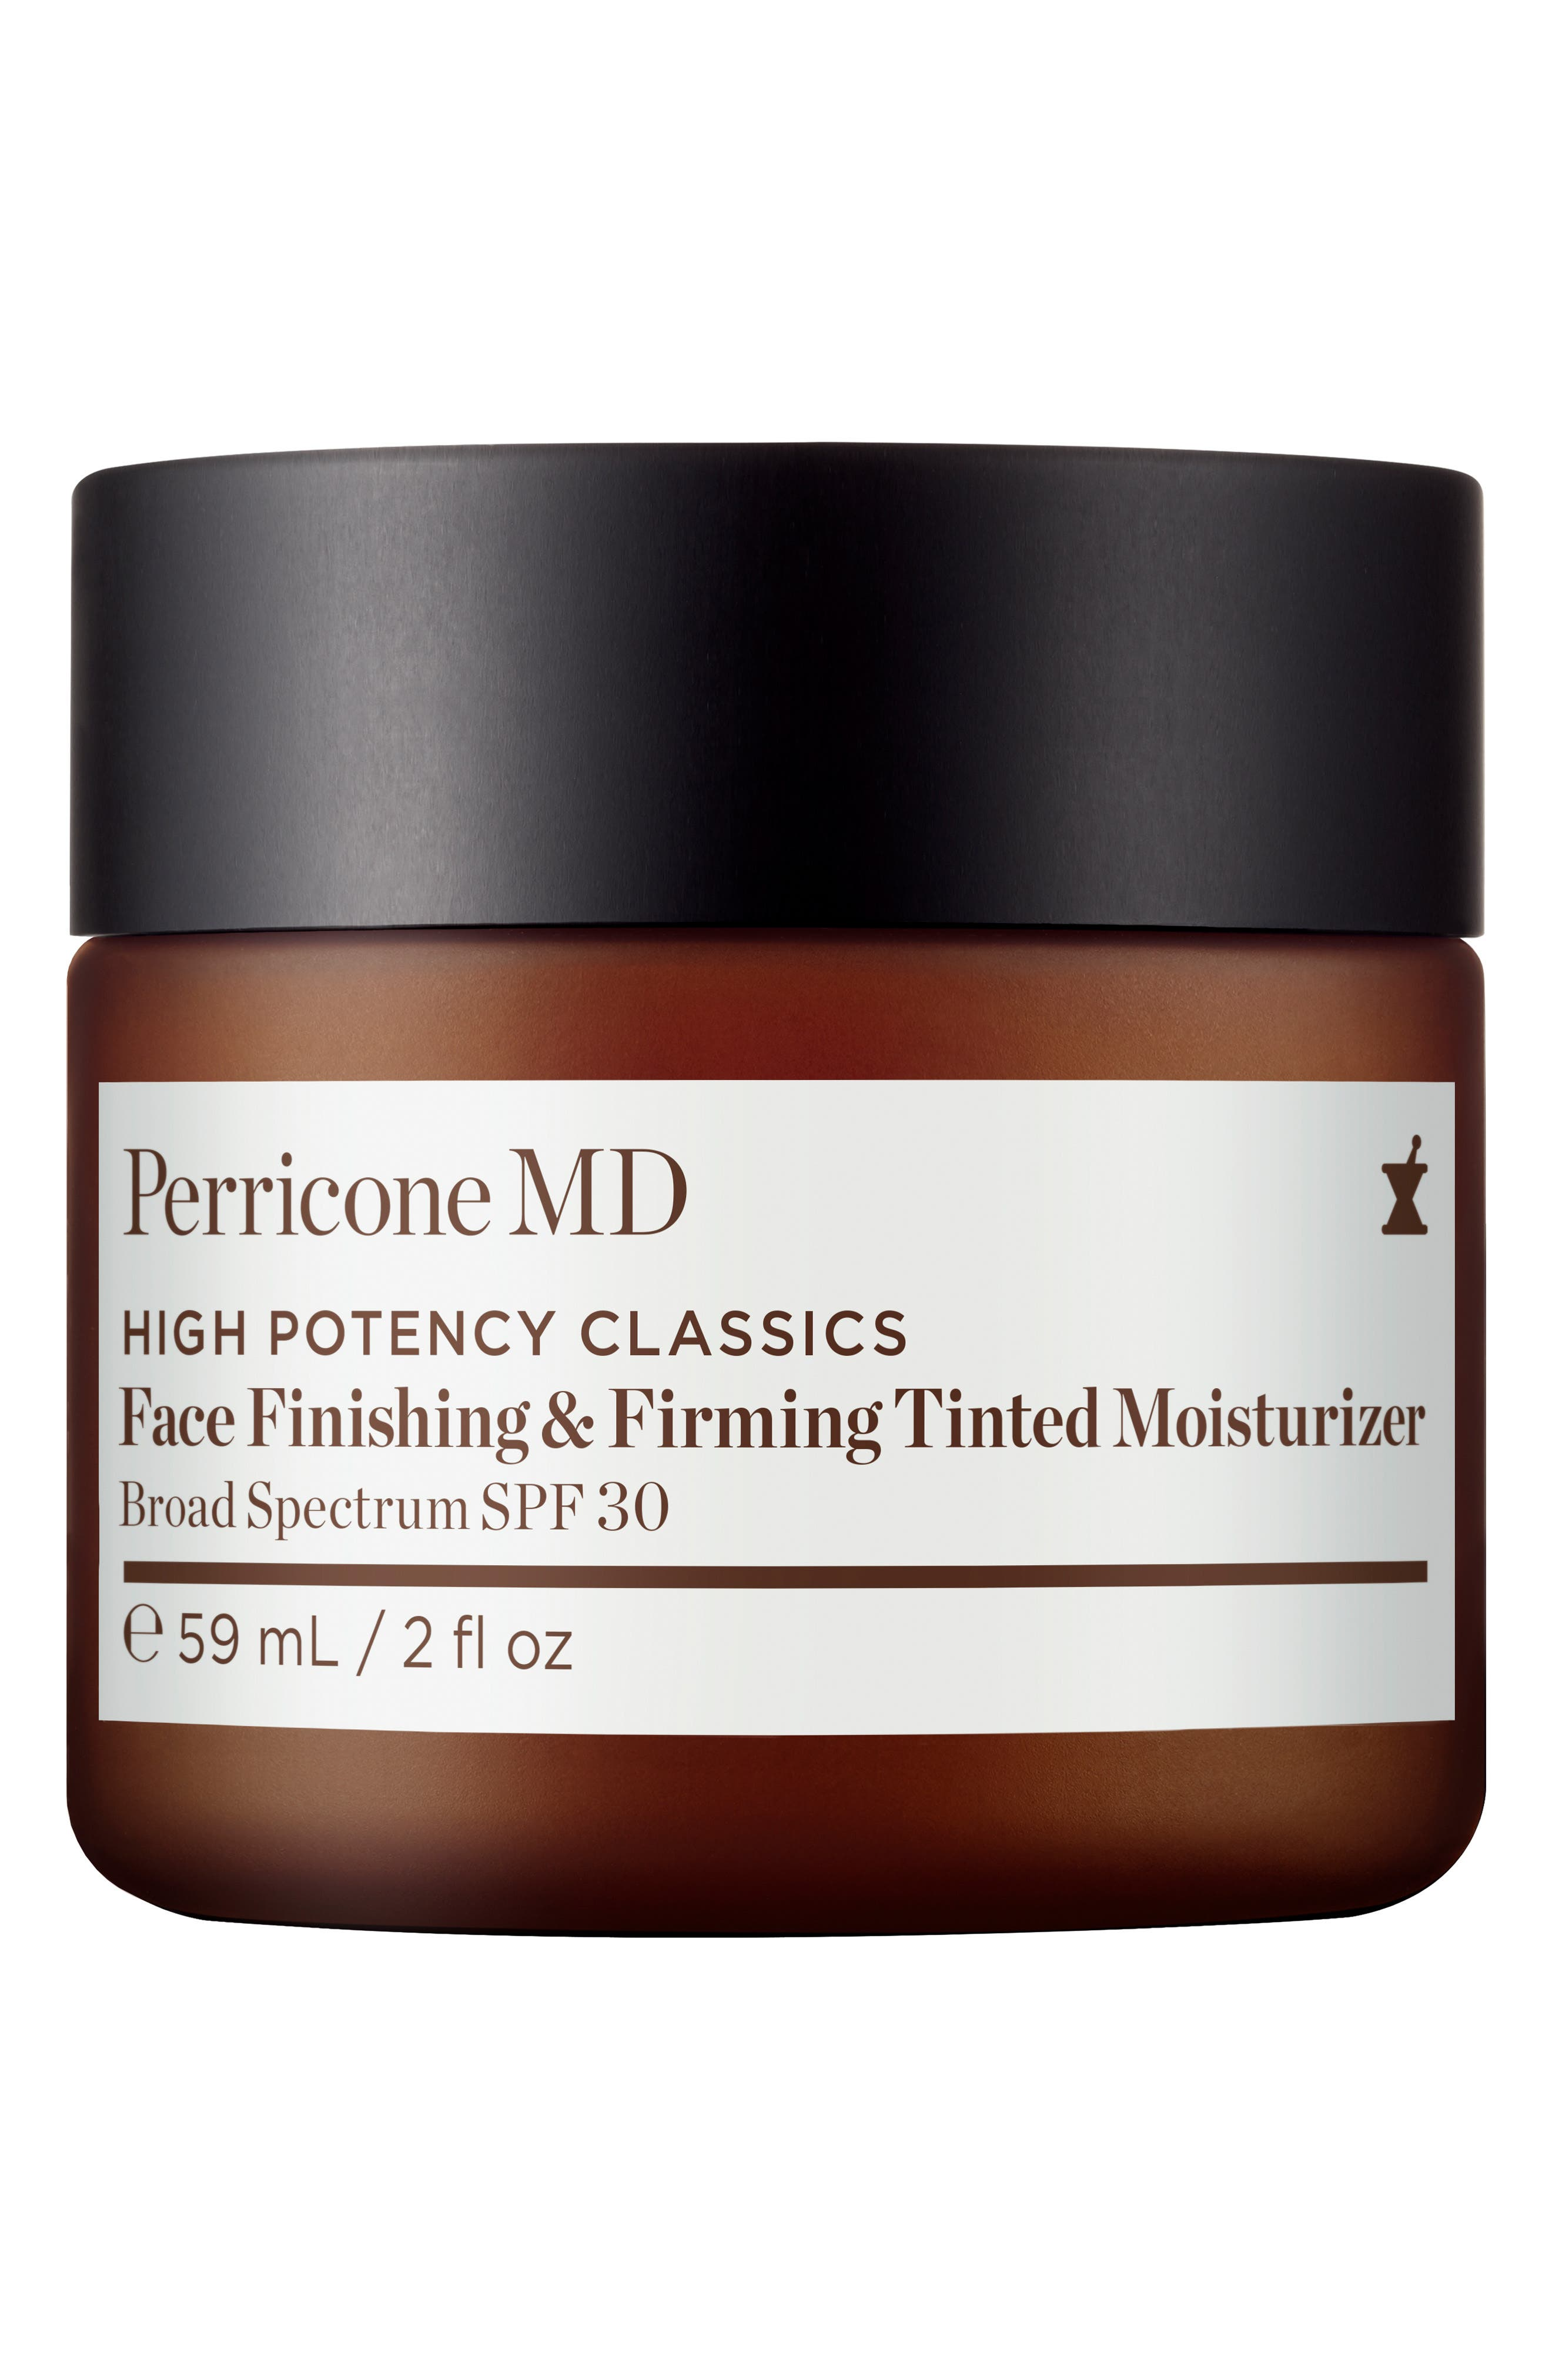 High Potency Classic Face Finishing & Firming Moisturizer Tint SPF 30, Main, color, NO COLOR